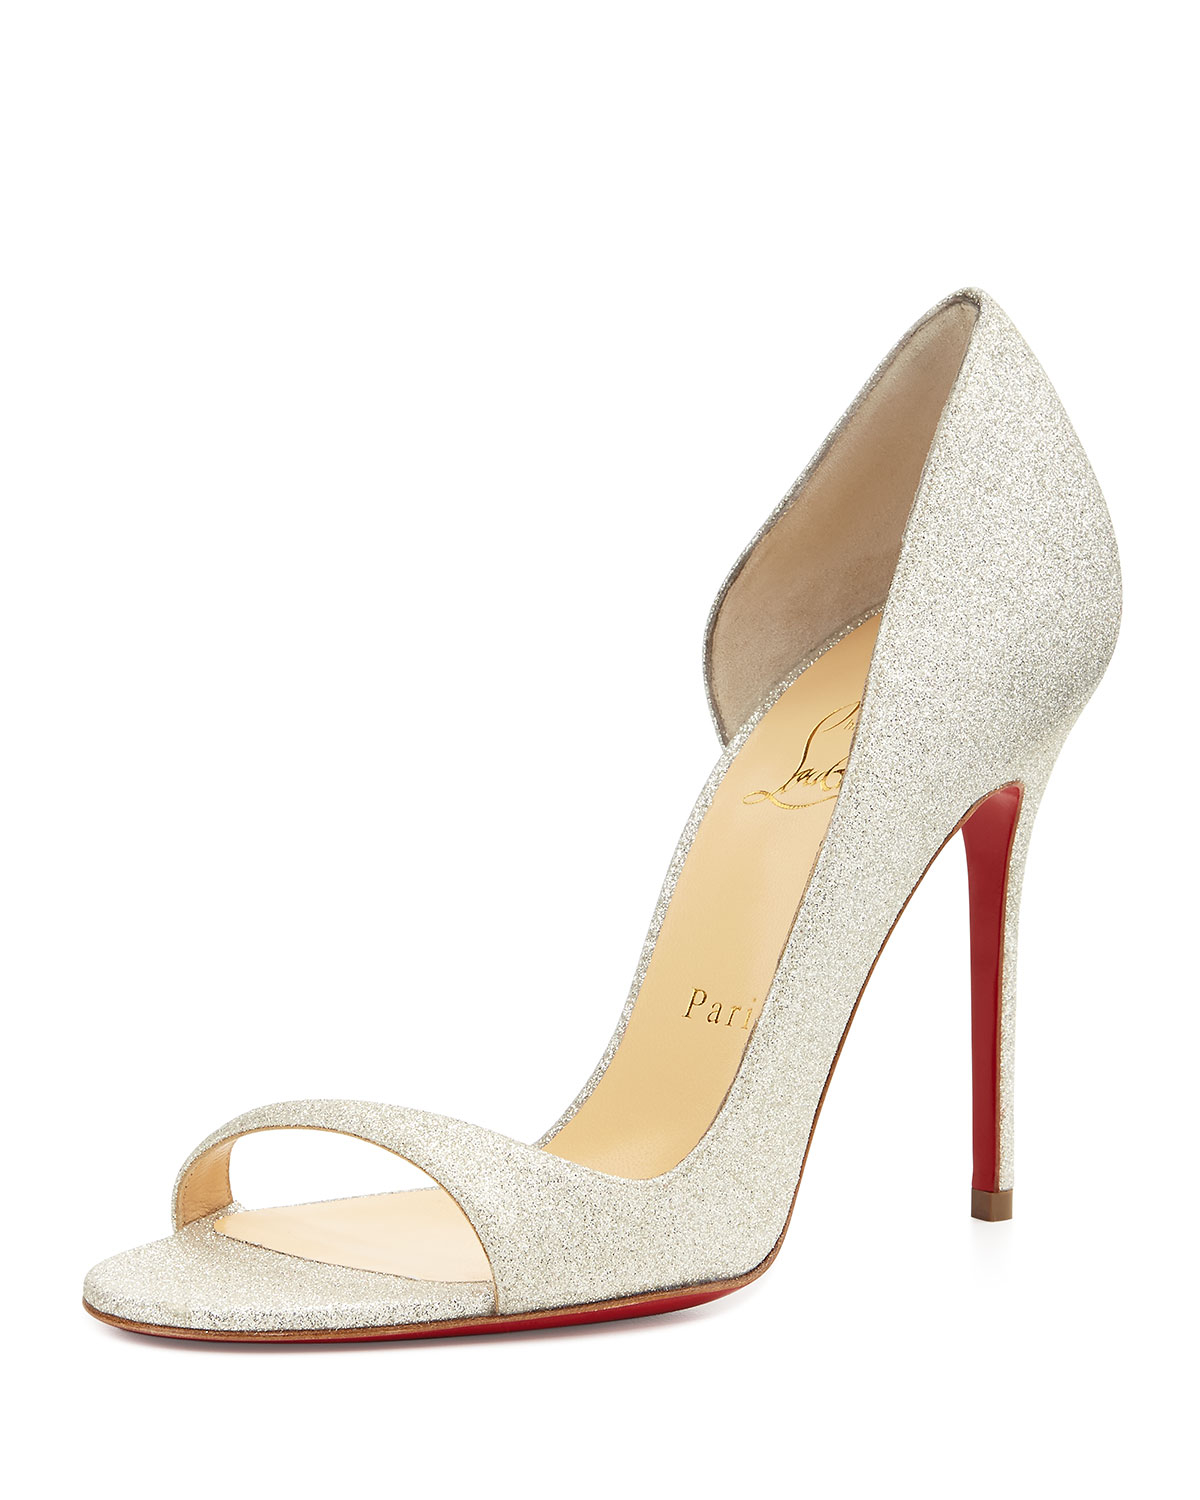 Christian Louboutin Toboggan Glitter Leather Red Sole Pump